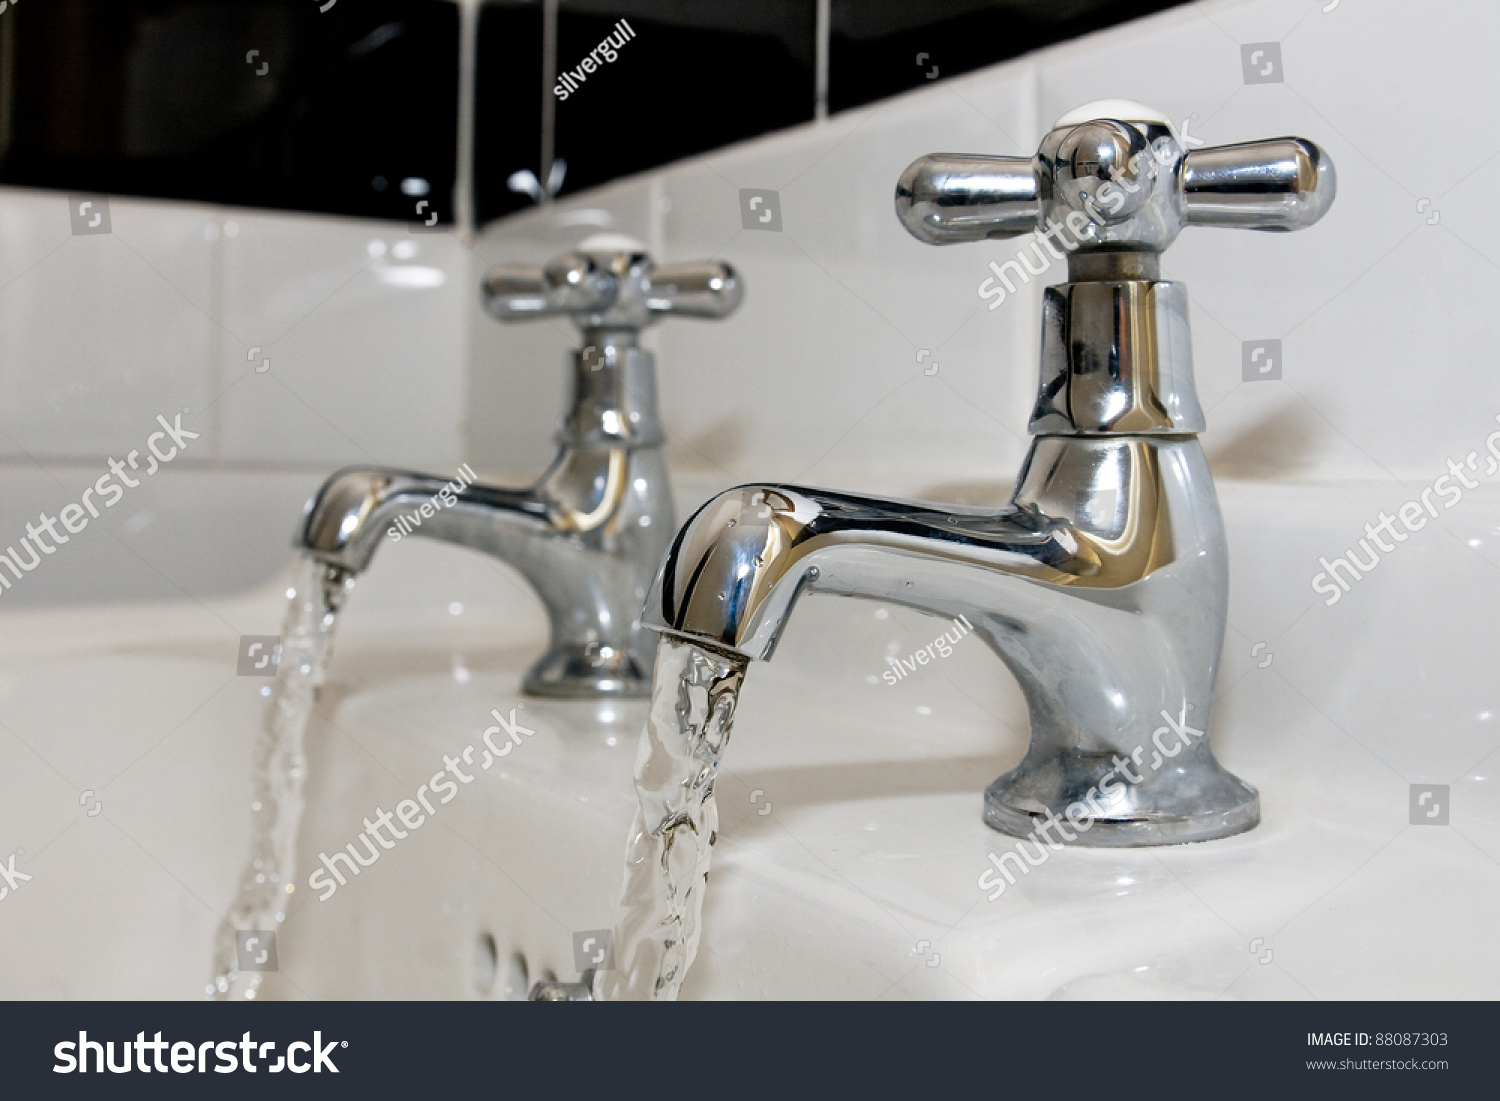 Faucets Running Water Stock Photo (Royalty Free) 88087303 - Shutterstock